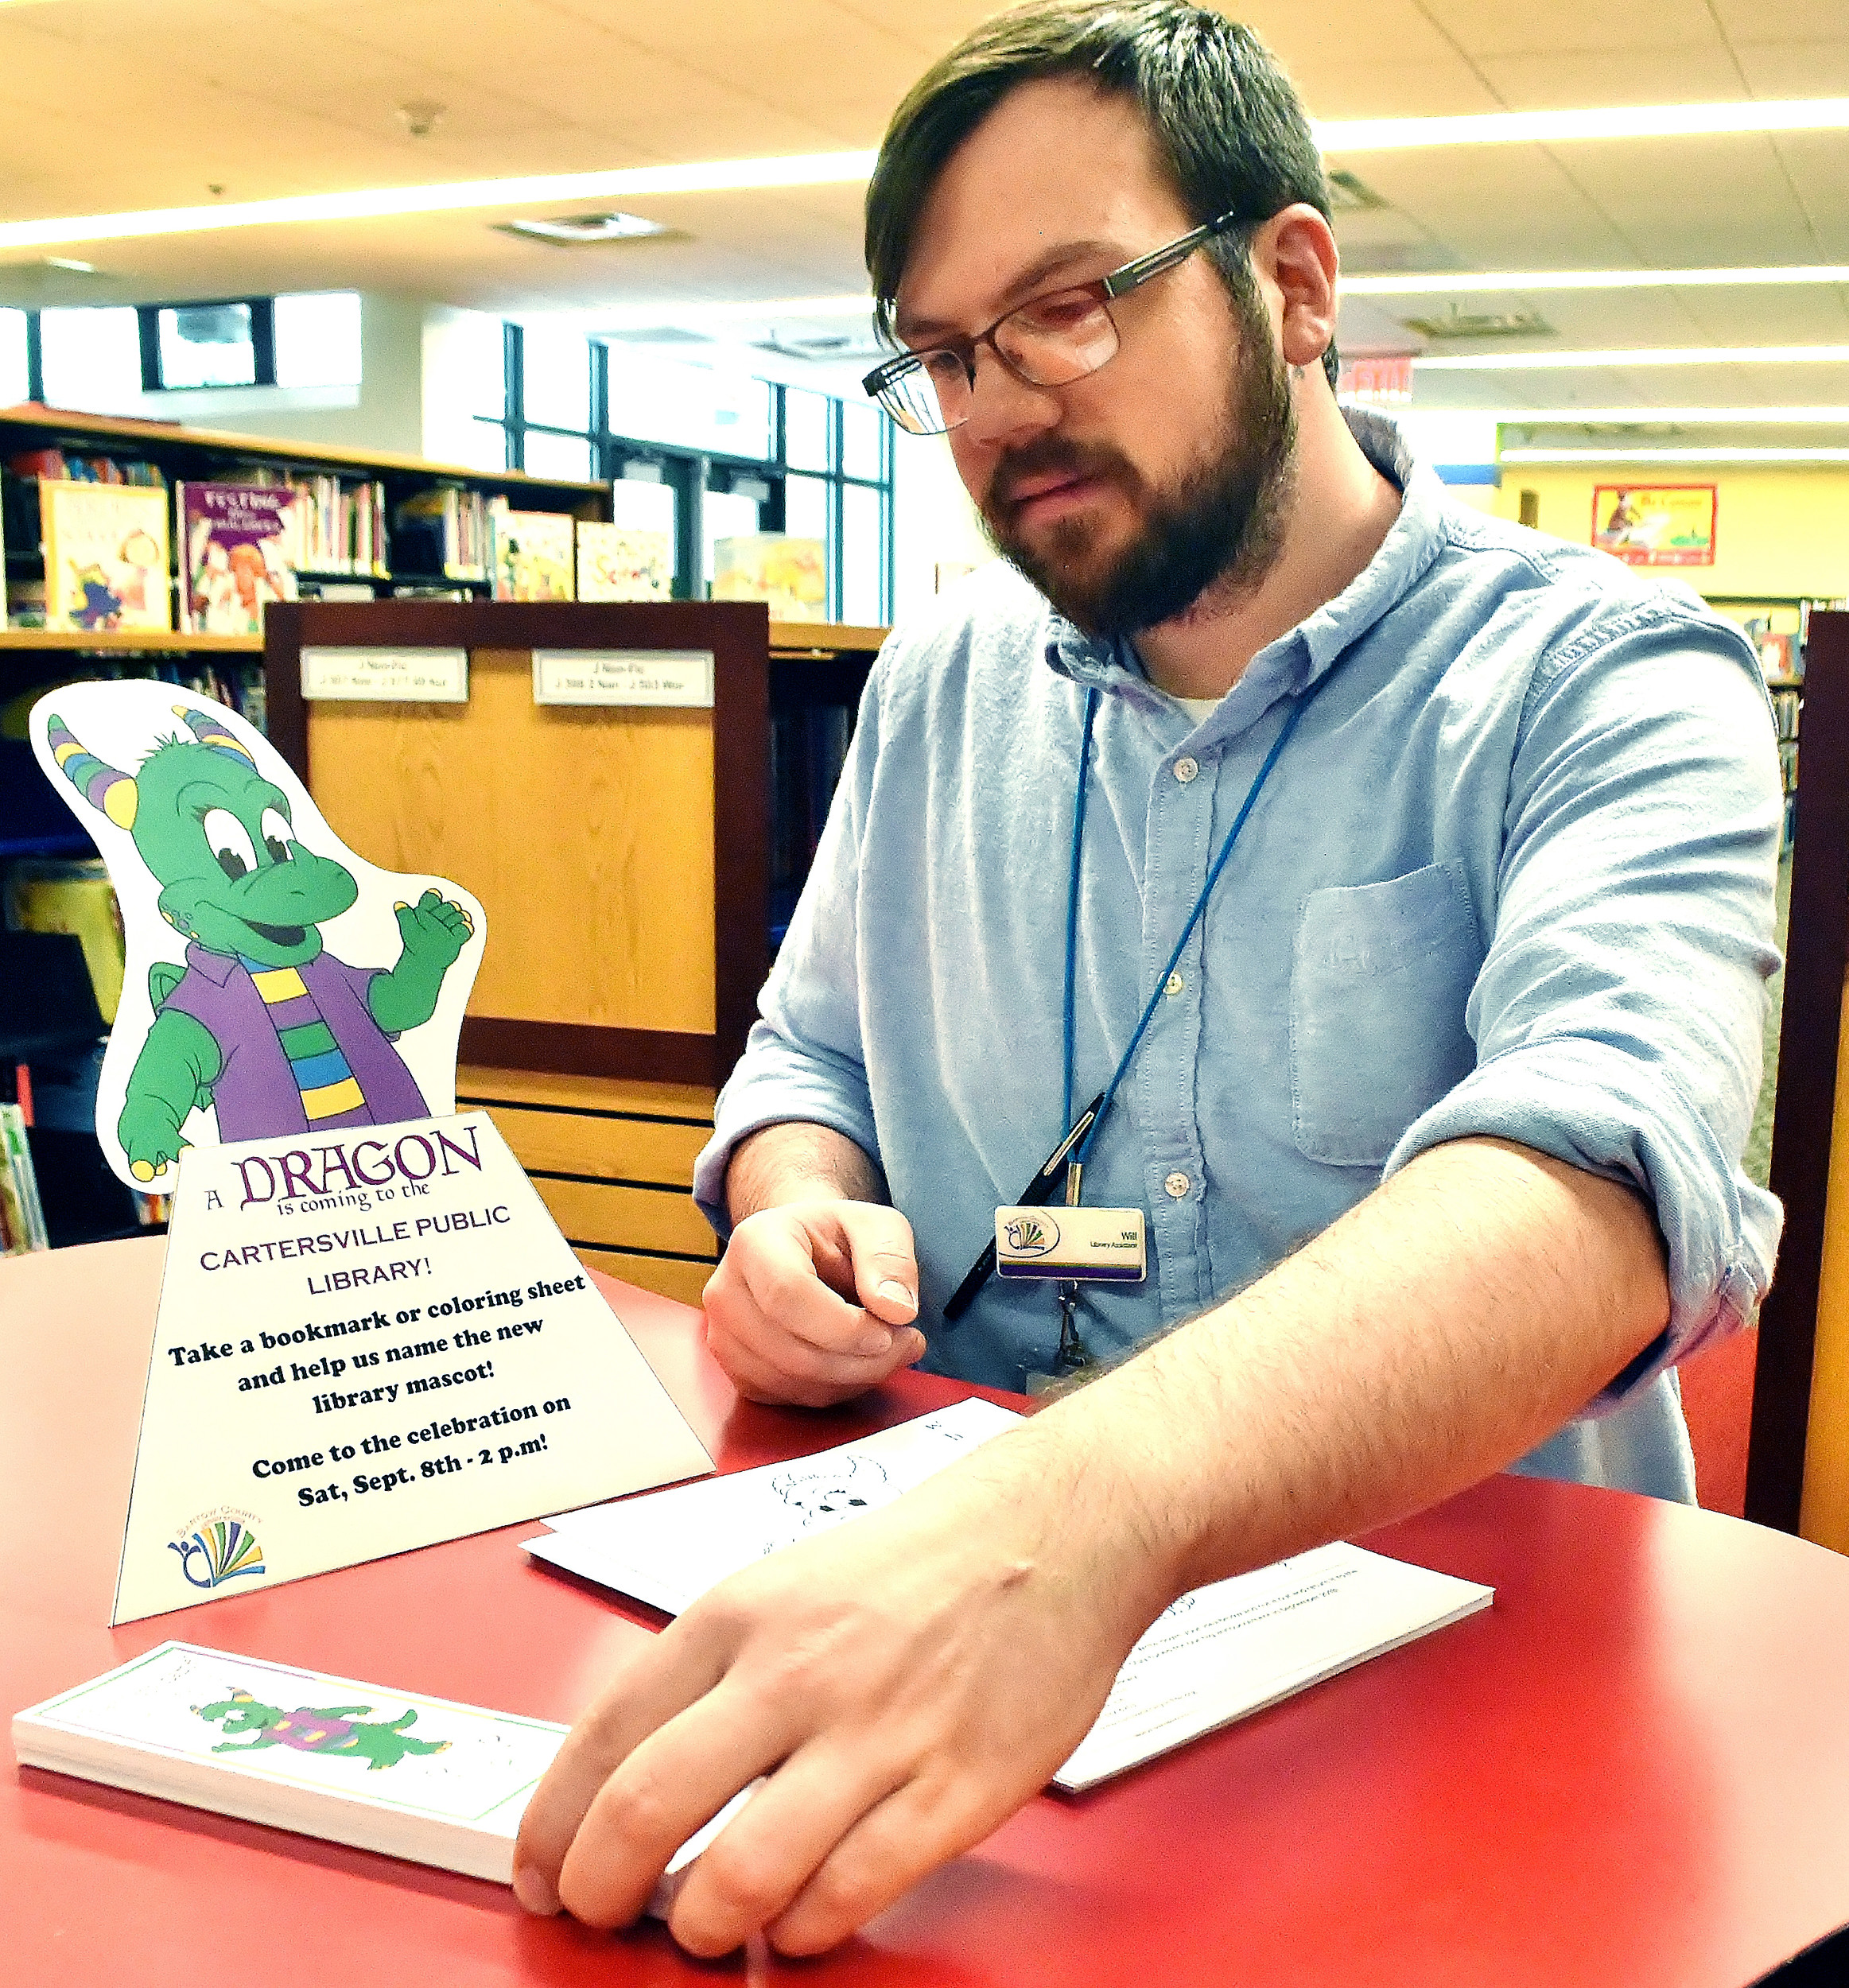 Will Gaylord, of the Cartersville branch of the Bartow County Library System, lays out materials in the children's section of the library announcing a contest to help name the dragon that has become the library's new mascot.